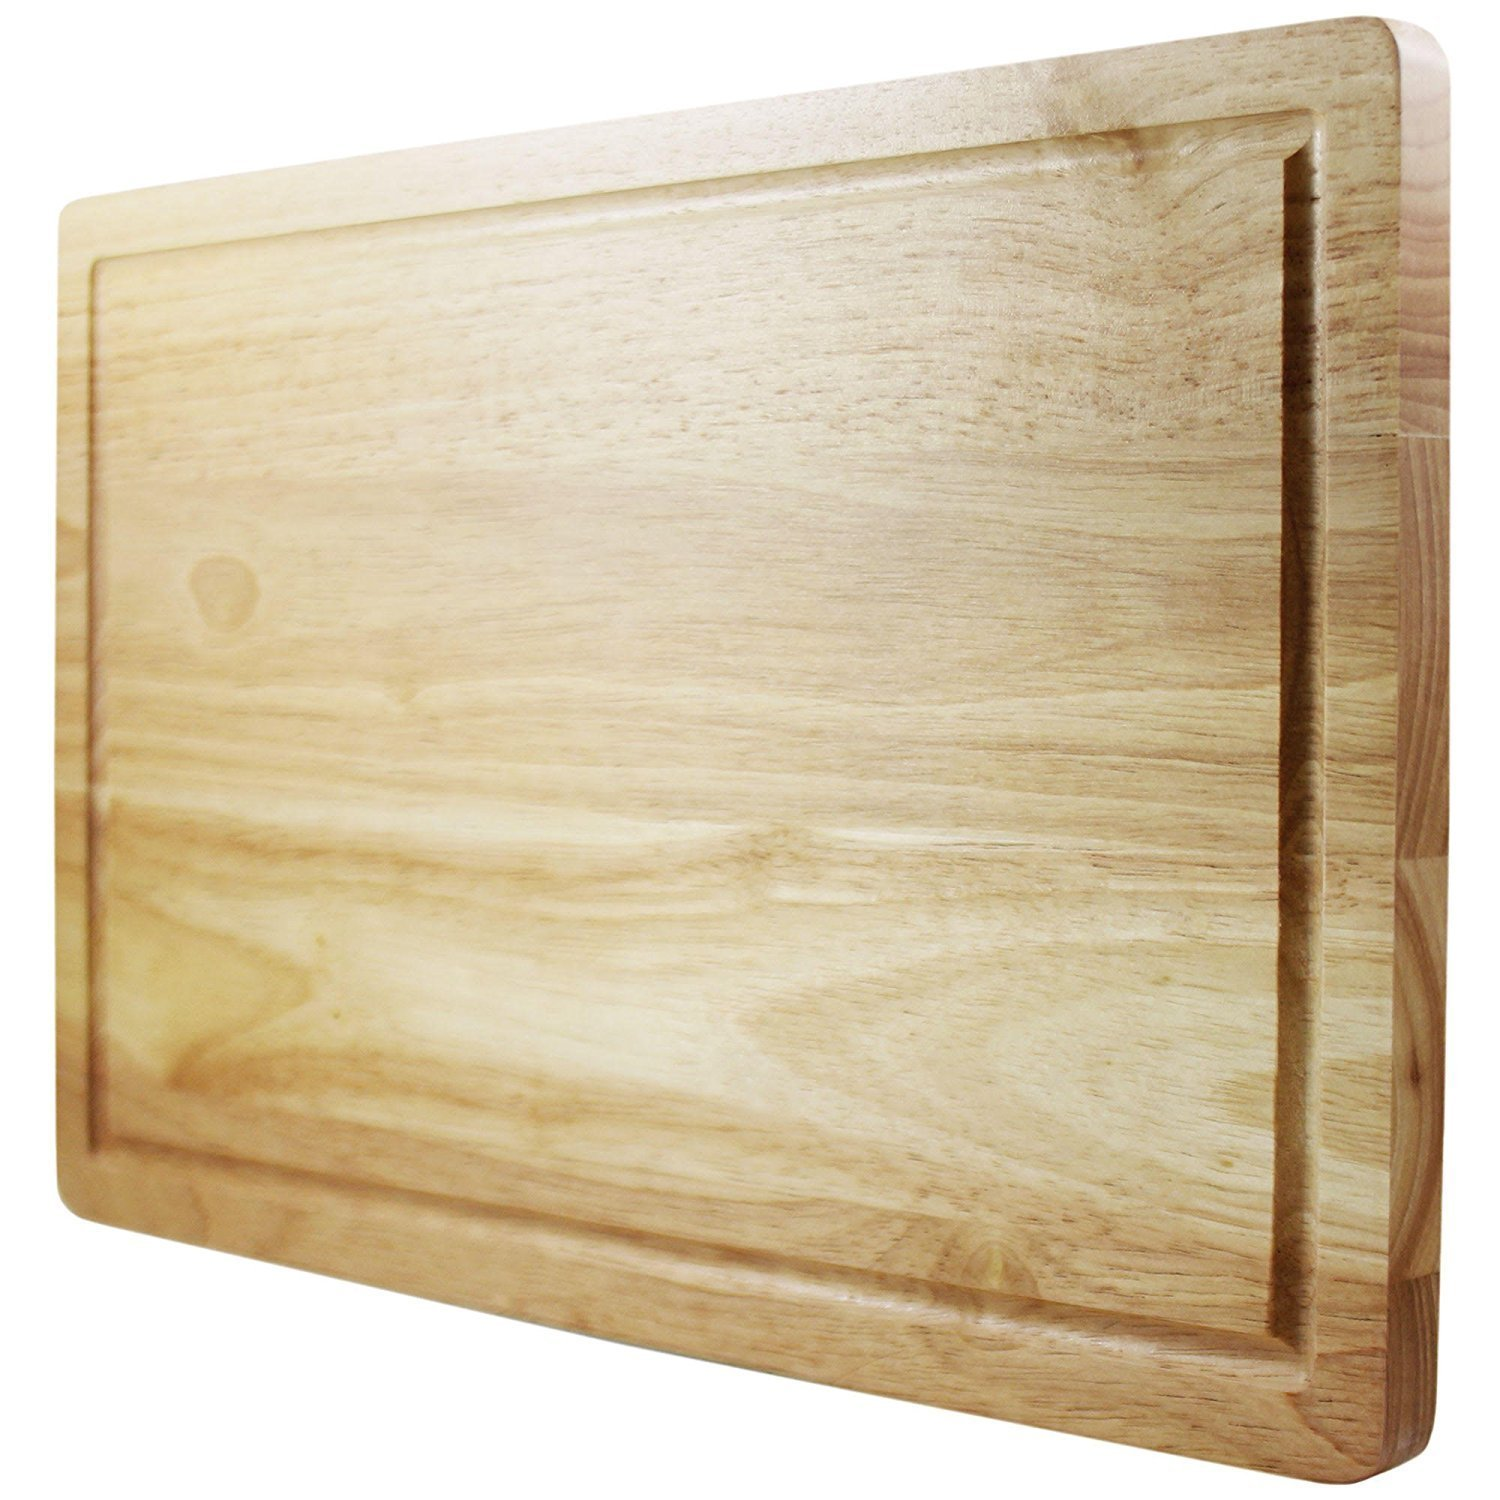 Latest Cutting Board - Best Rated Hardwood Chopping Block - Large 16x10 Inch Kitchen Tool - Stronger Than Plastic Ware Or Bamboo Appliances - Approved By Butchers